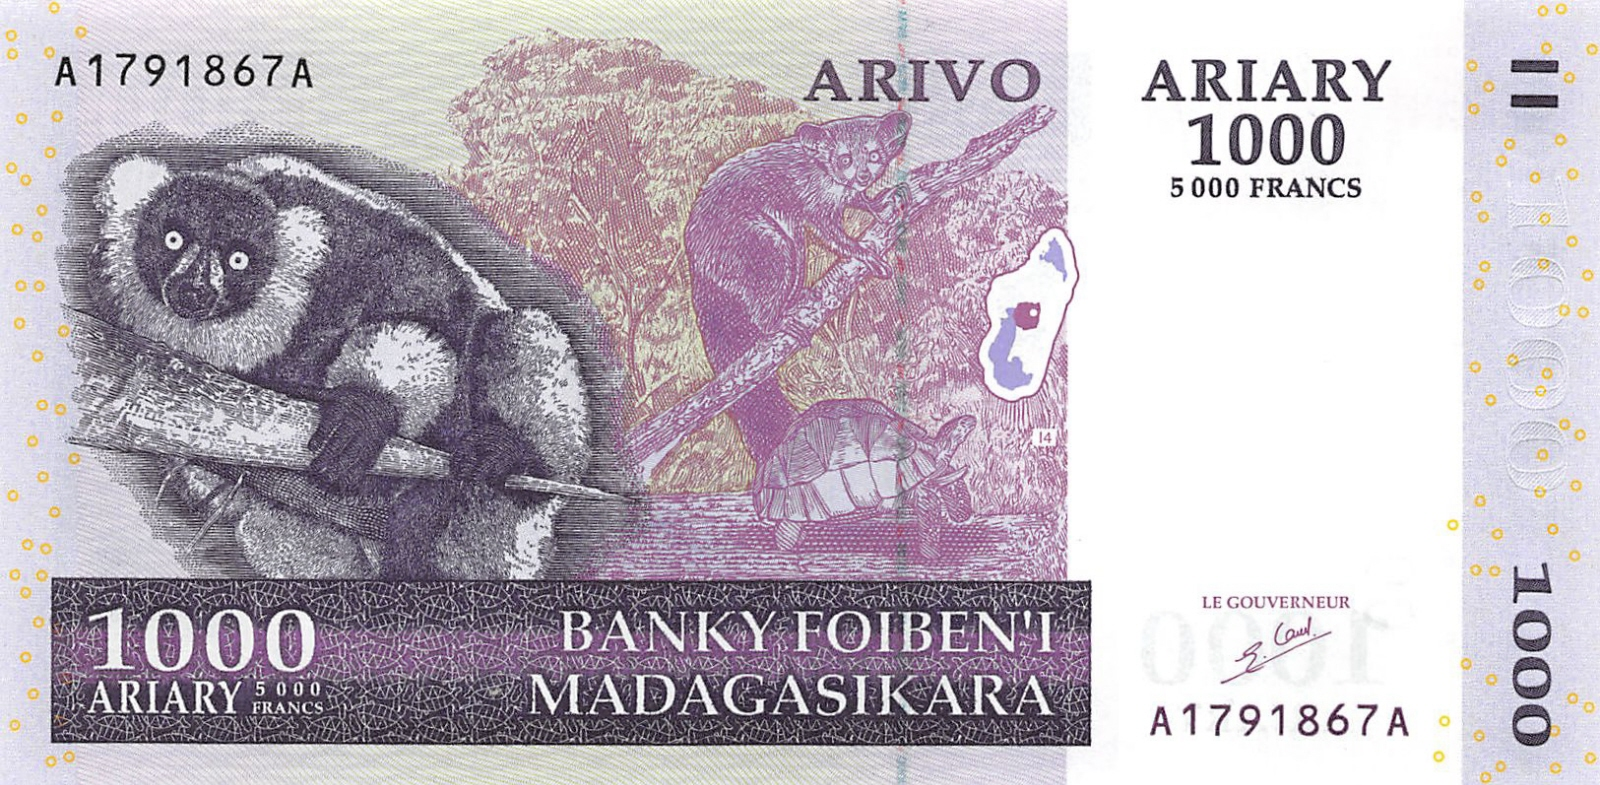 Madagascar Paper Money 1000 Ariary 5000 Francs 2004 UNC